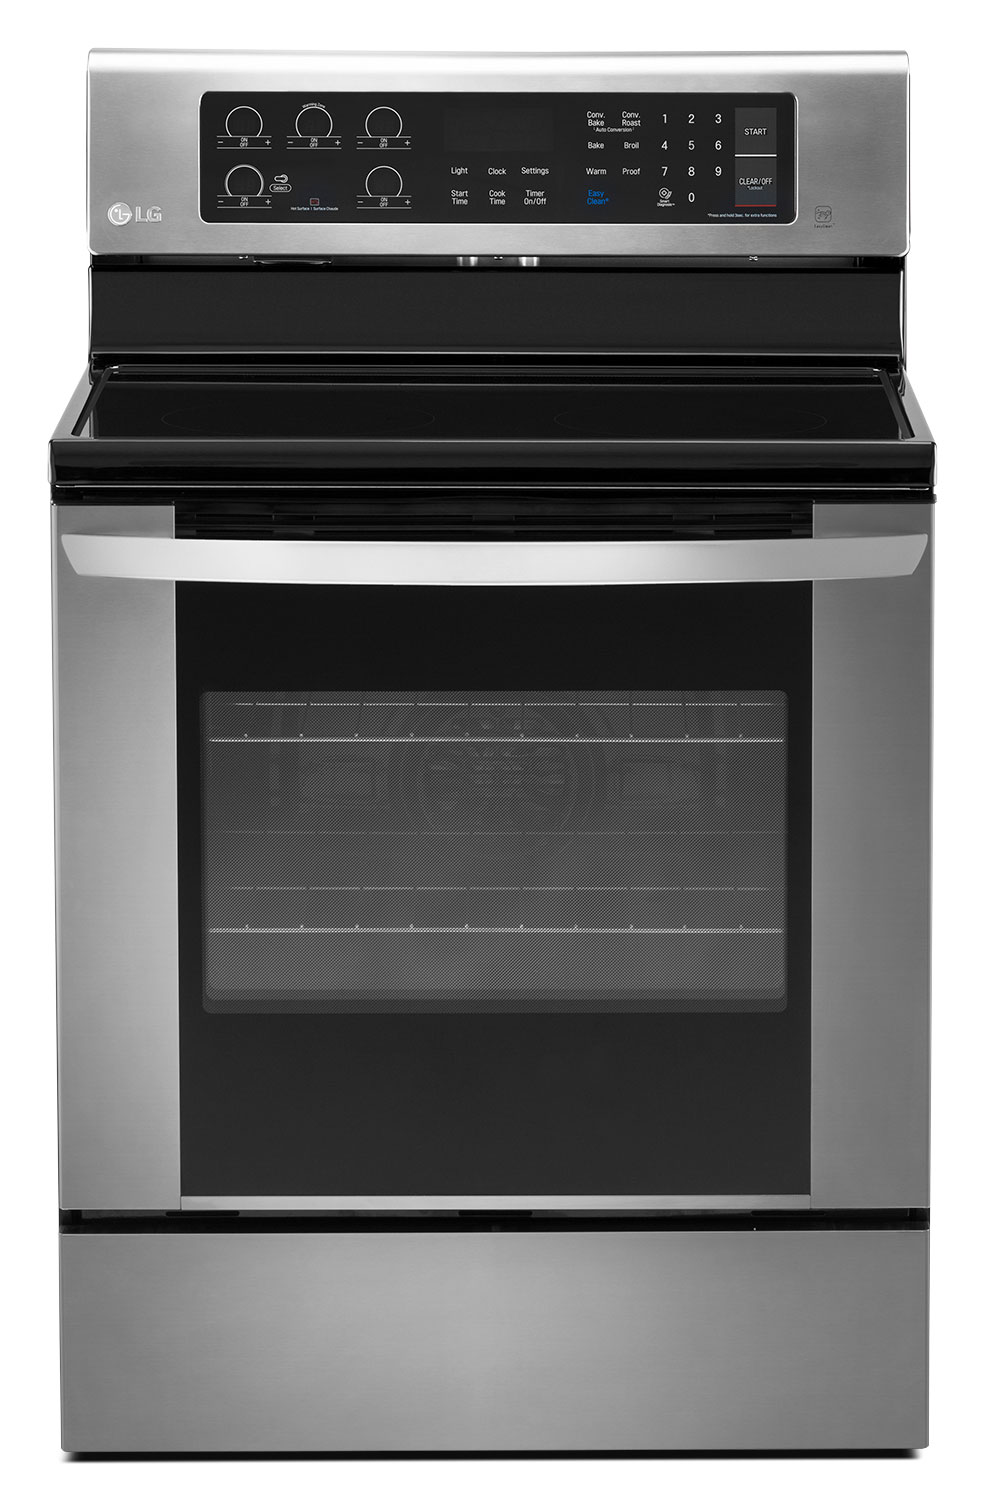 LG 6.3 Cu. Ft. Freestanding Electric Convection Range – LRE3061ST